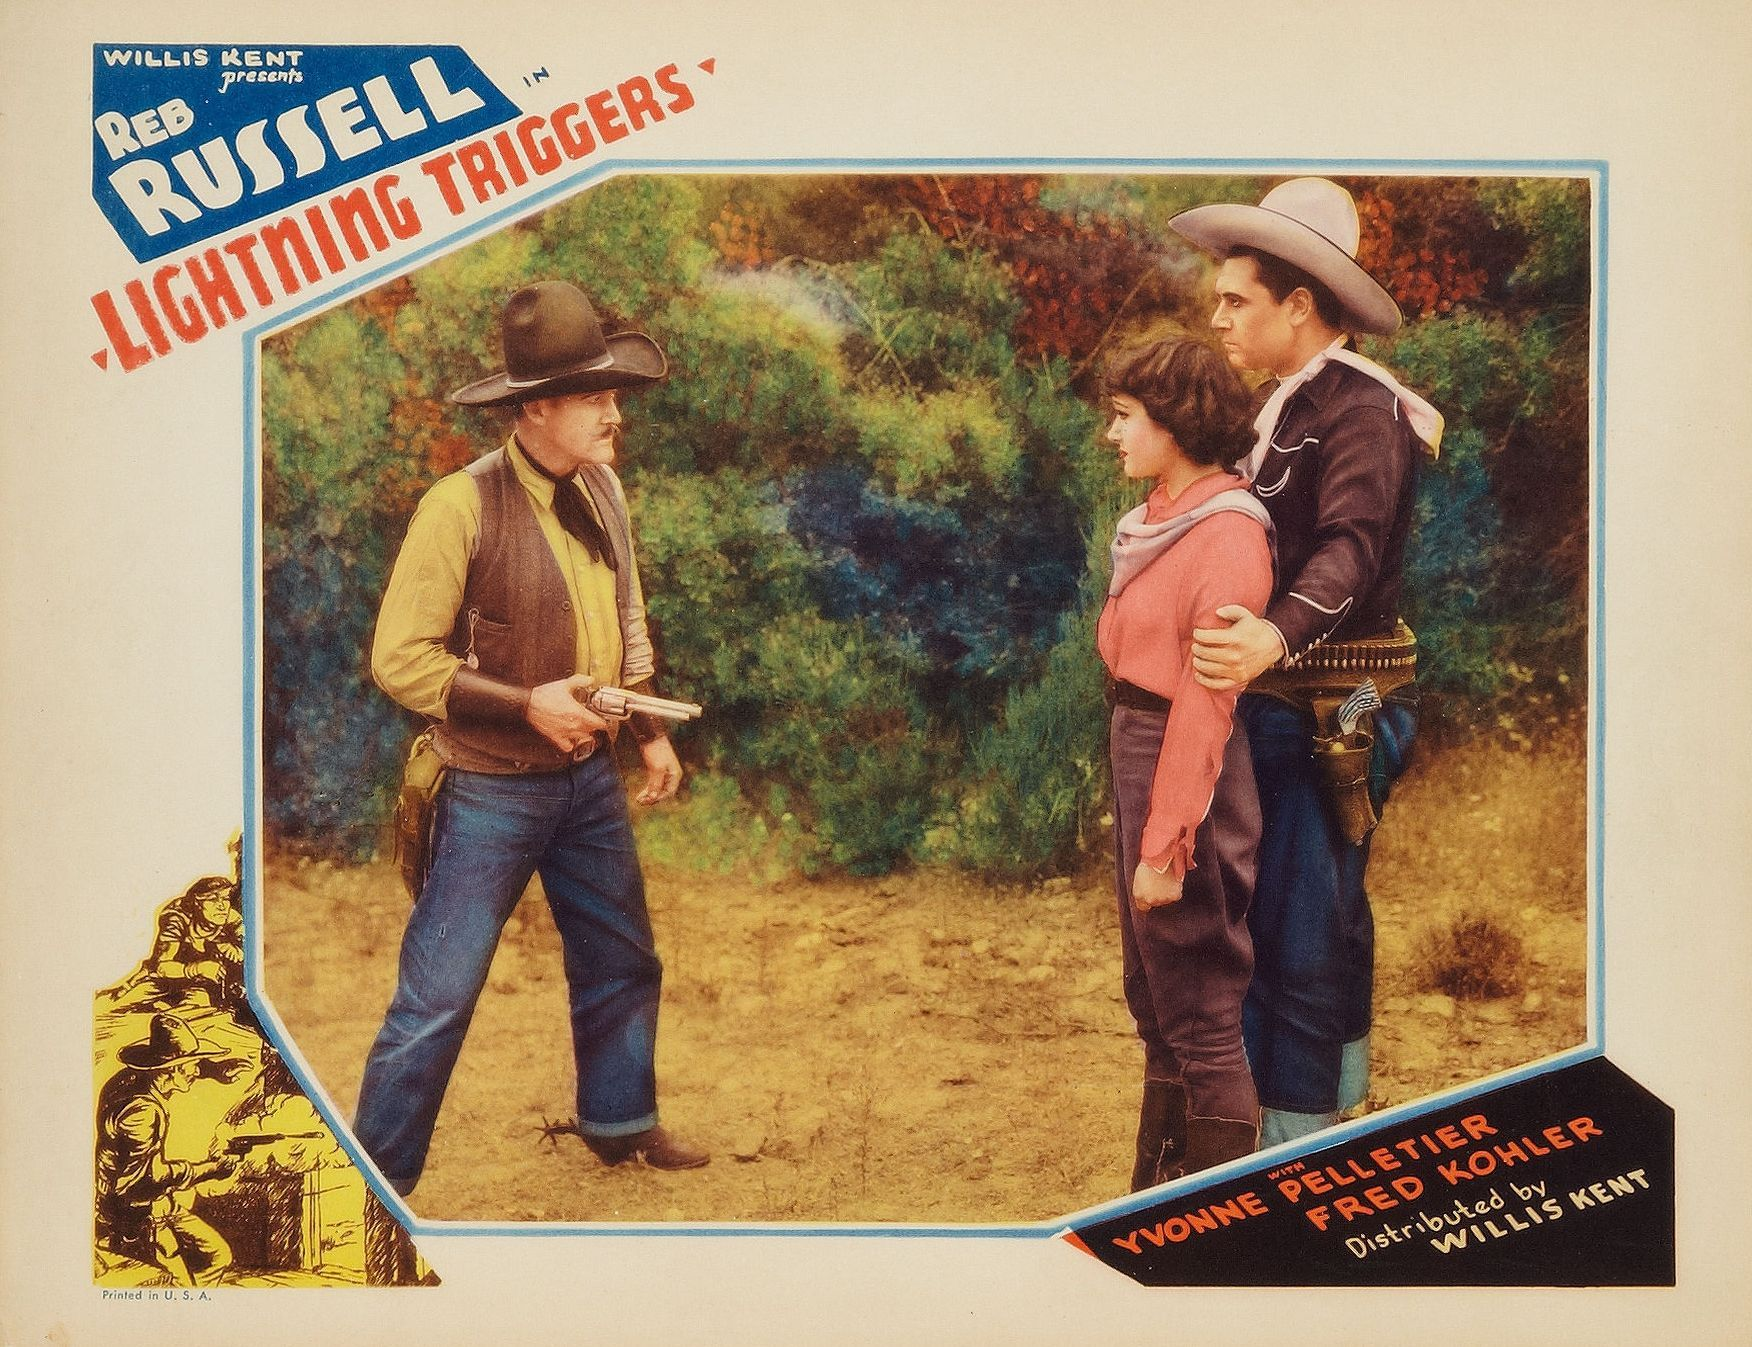 Yvonne Pelletier, Jack Rockwell, and Reb Russell in Lightning Triggers (1935)